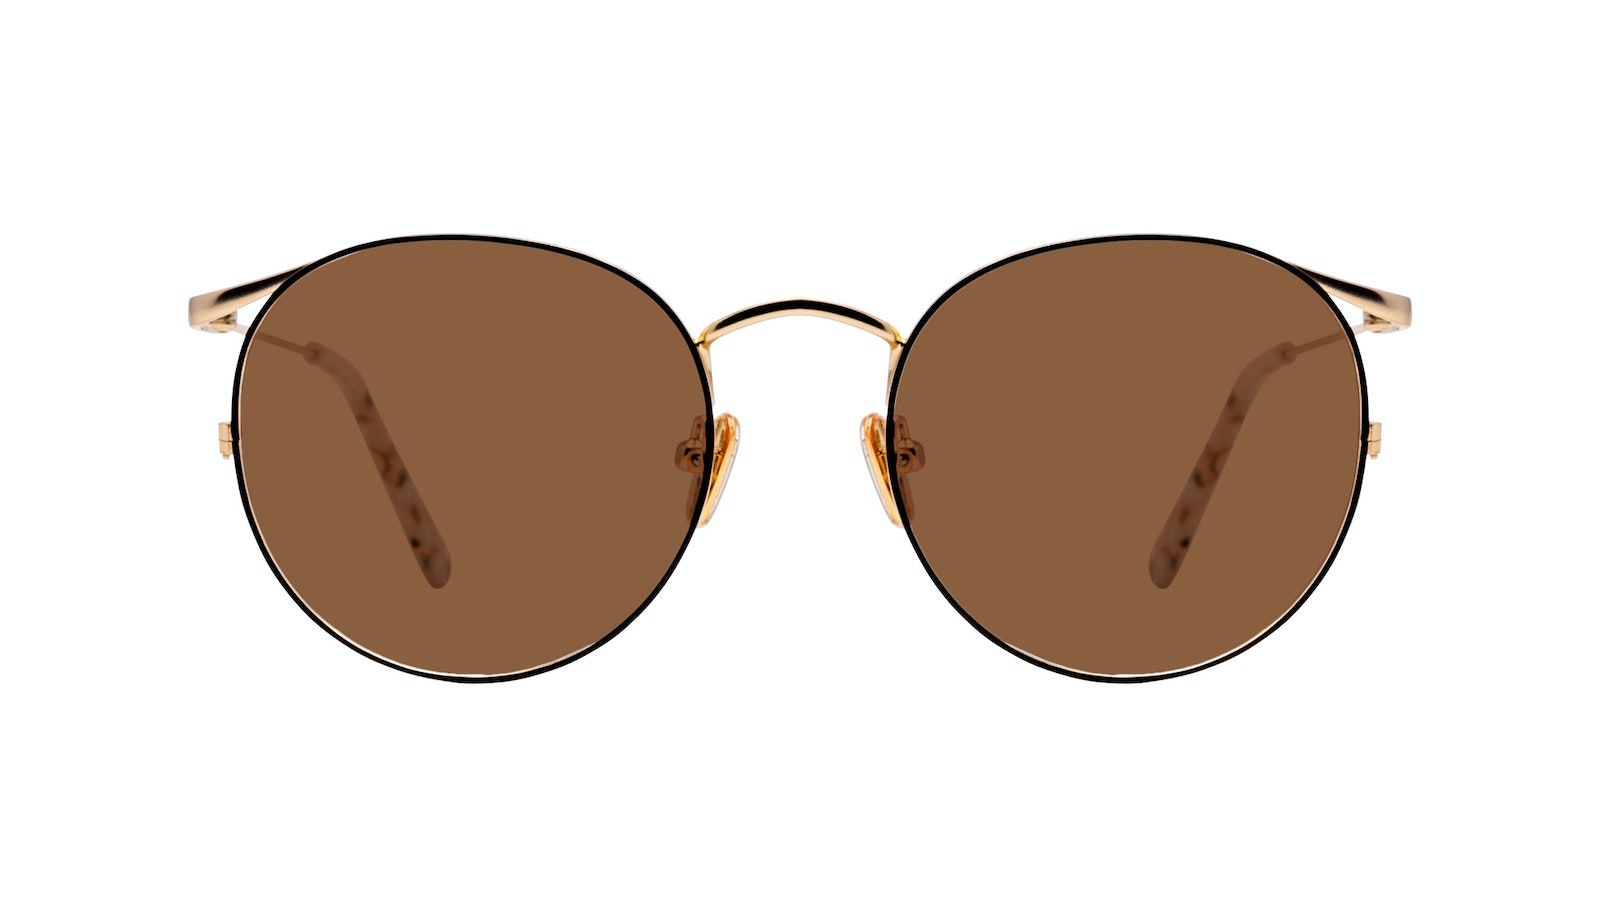 Affordable Fashion Glasses Round Sunglasses Women Curve Deep Gold